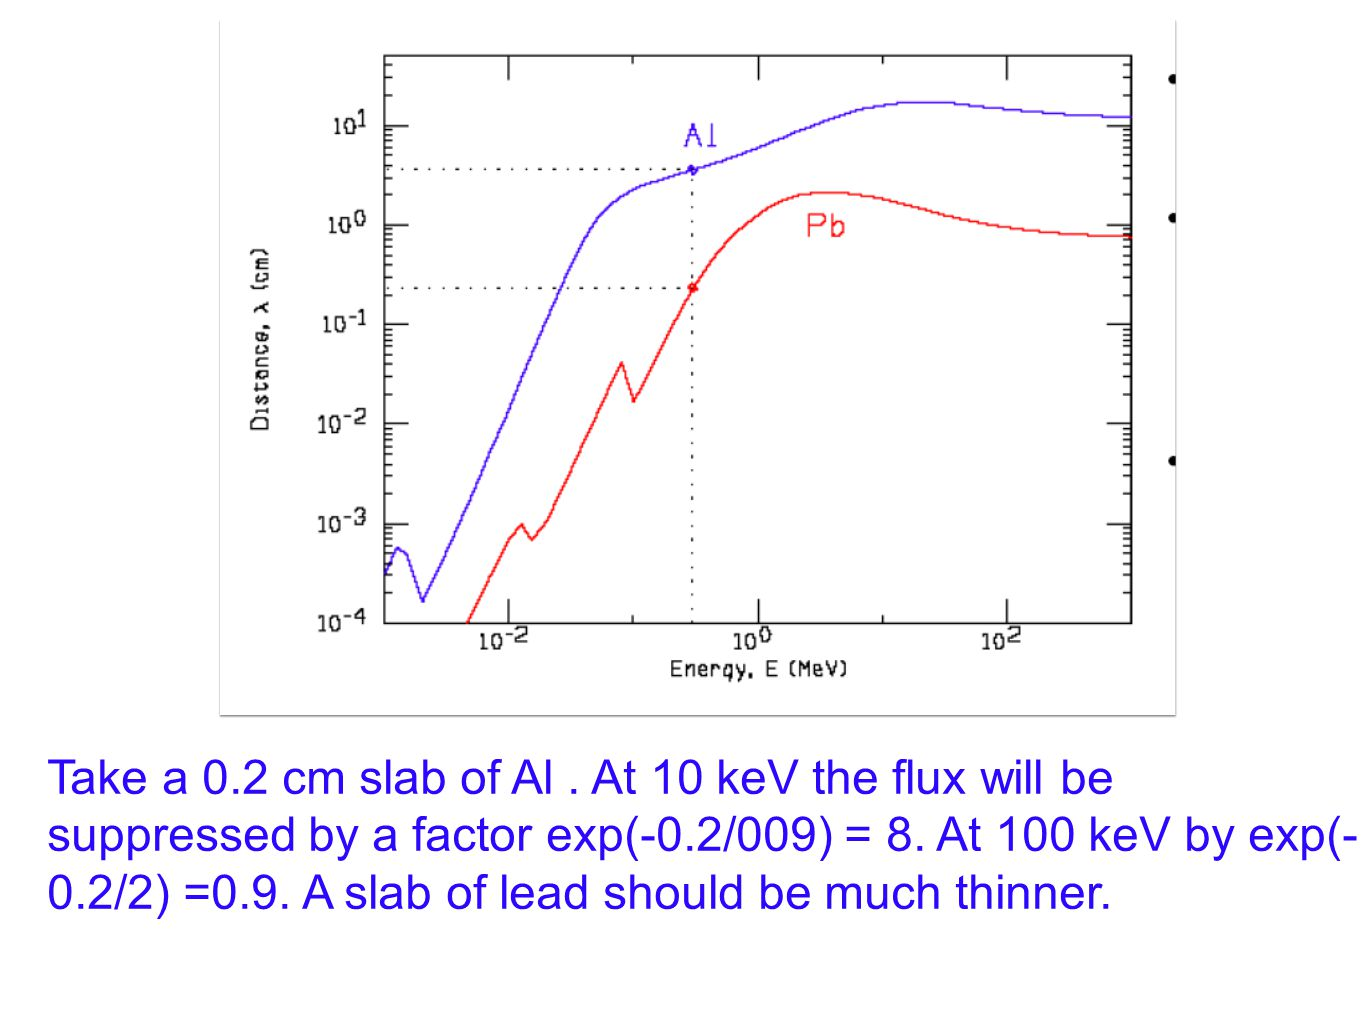 Take a 0.2 cm slab of Al. At 10 keV the flux will be suppressed by a factor exp(-0.2/009) = 8.